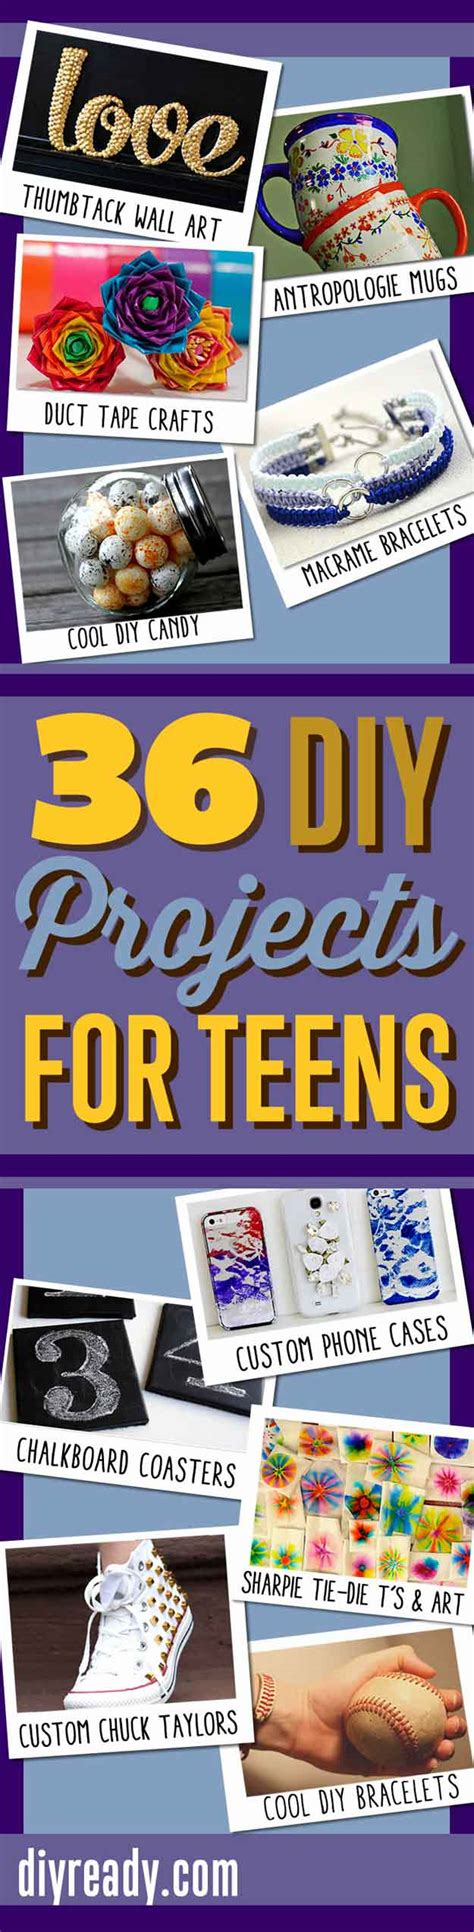 cool diy projects for teenagers 36 diy projects for teenagers cool crafts for diy